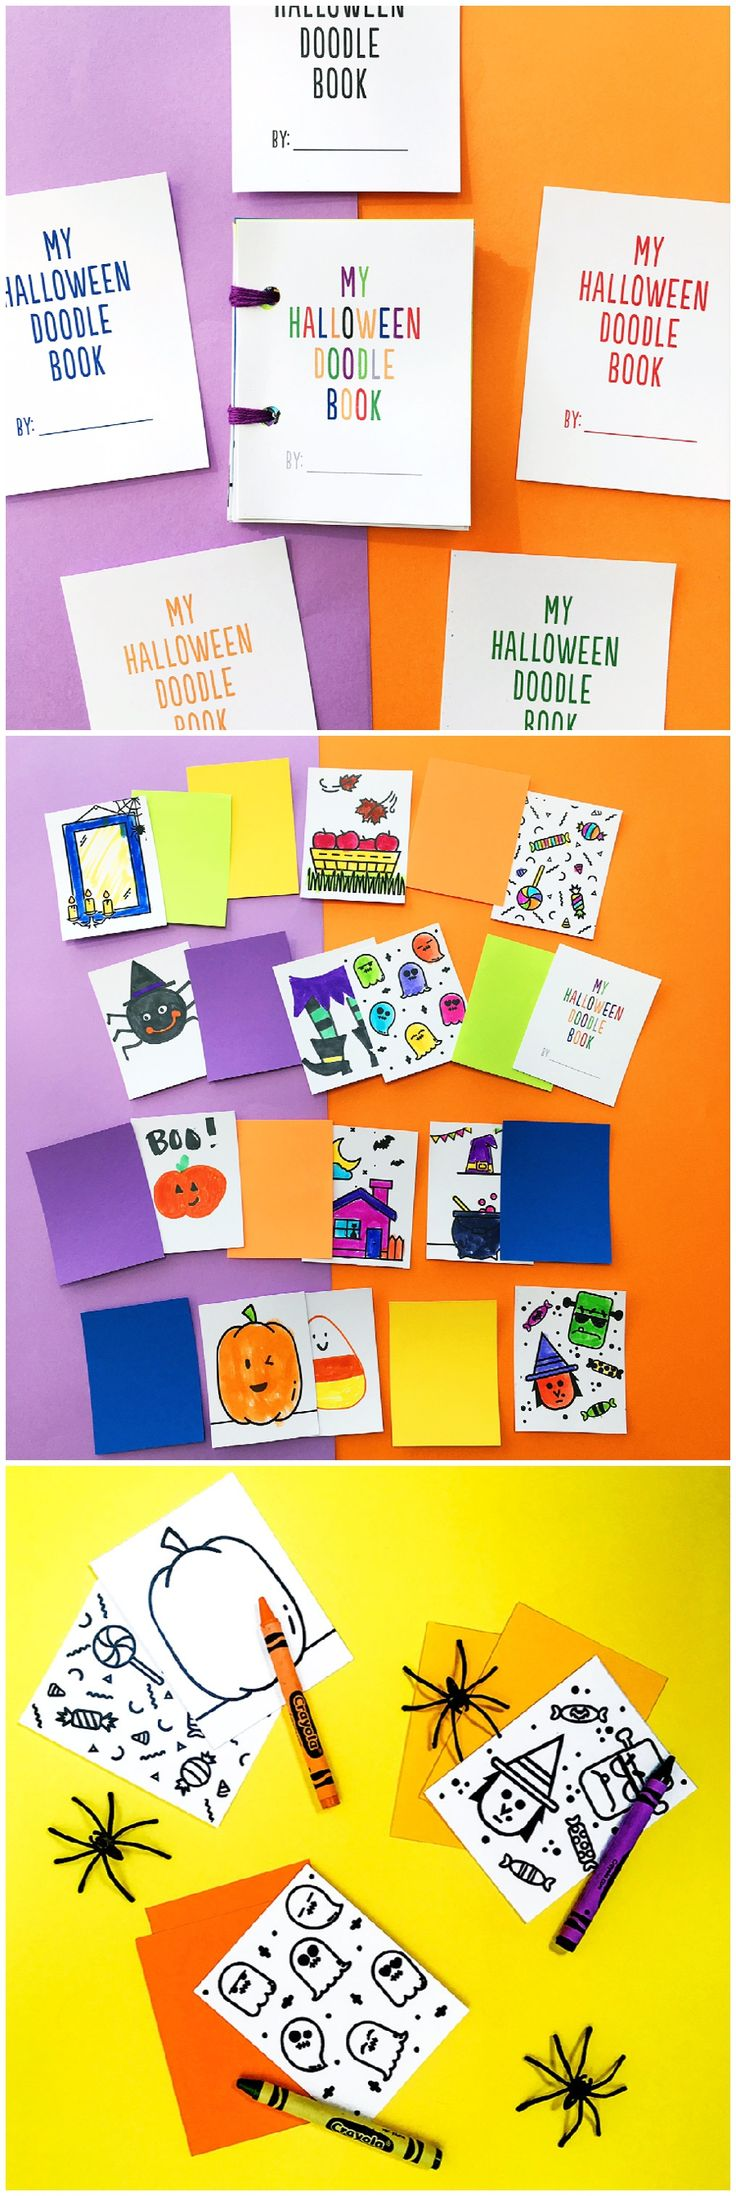 DIY Mini Halloween Doodle Books Free Printables. Cute Halloween art project for kids or non-candy Halloween favors.